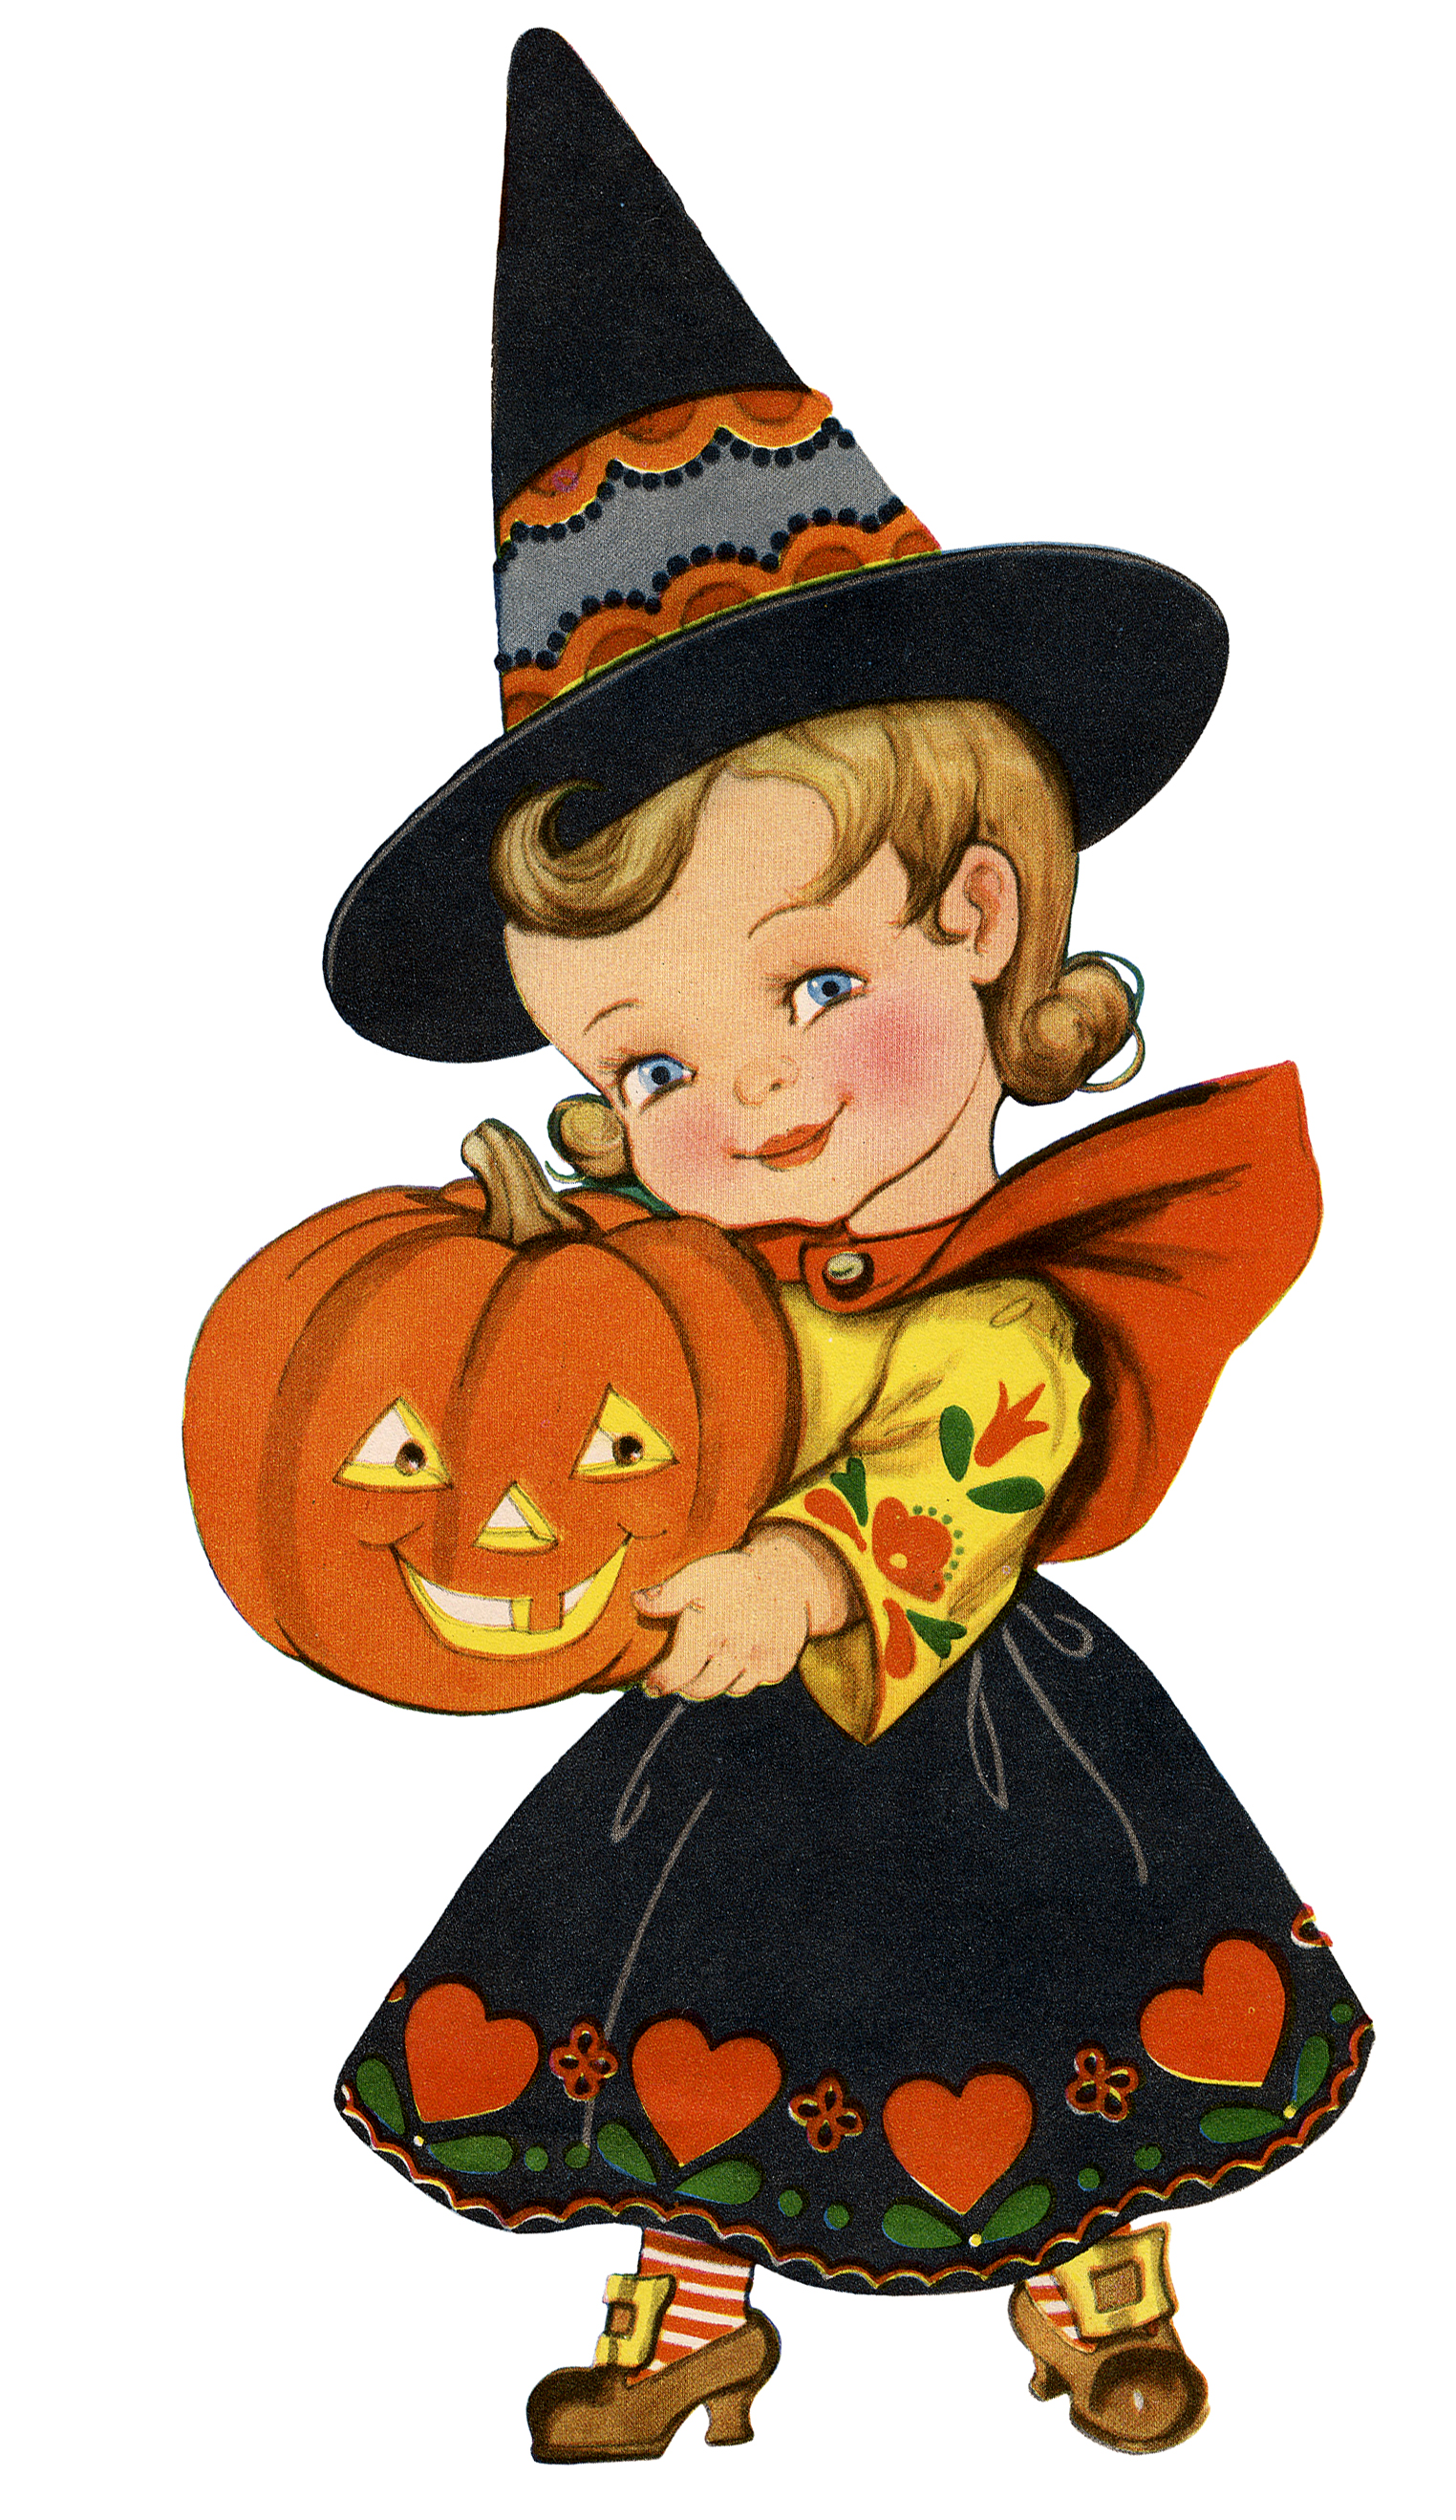 Retro Halloween Girl Image